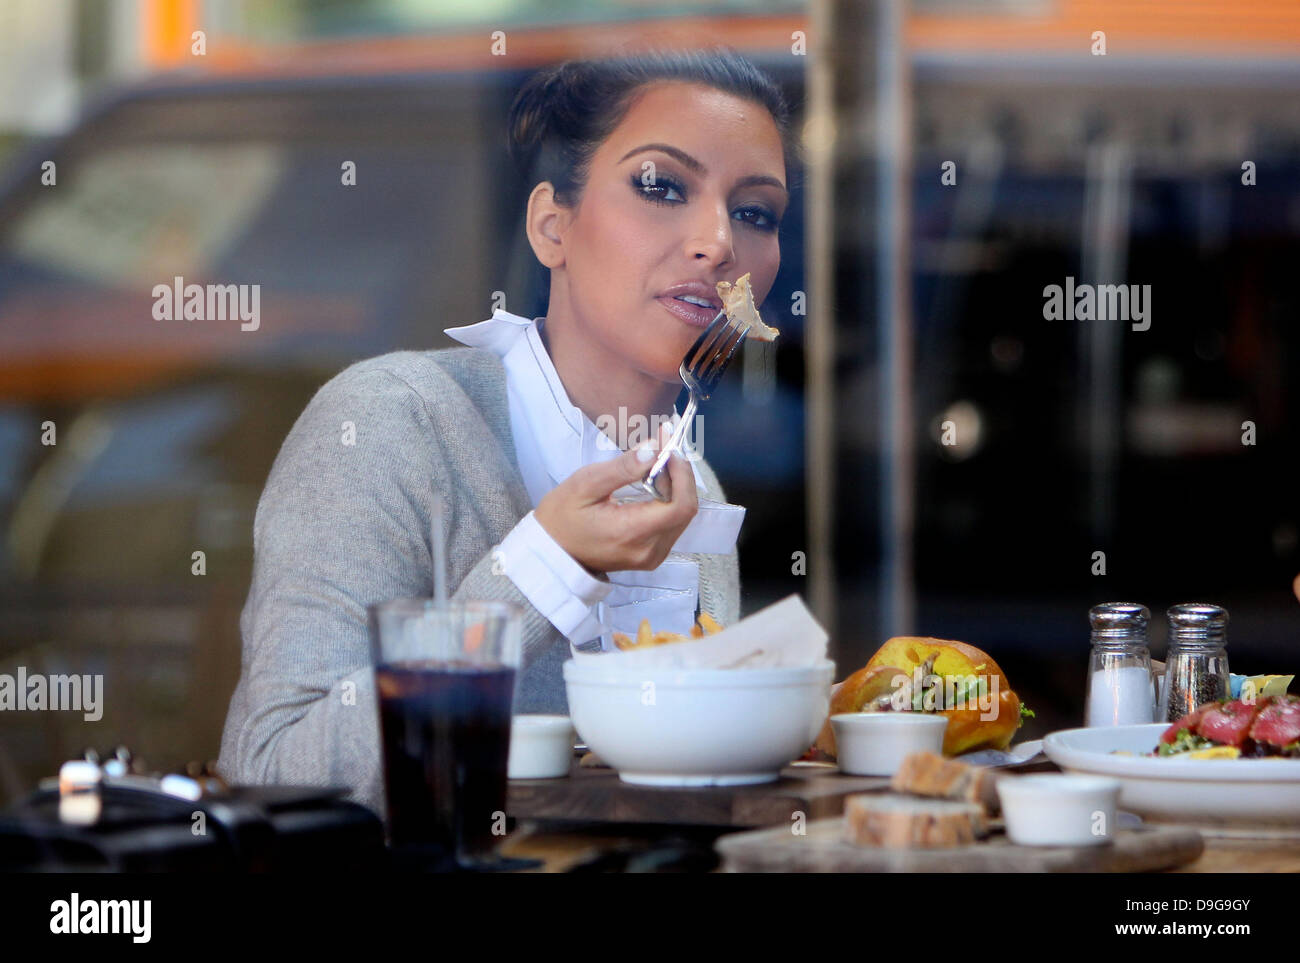 42f2d35cb4 Kim Kardashian having lunch with a friend at Breadbar in West Hollywood  during filming for her reality show  Keeping Up with the Kardashians  Los  Angeles